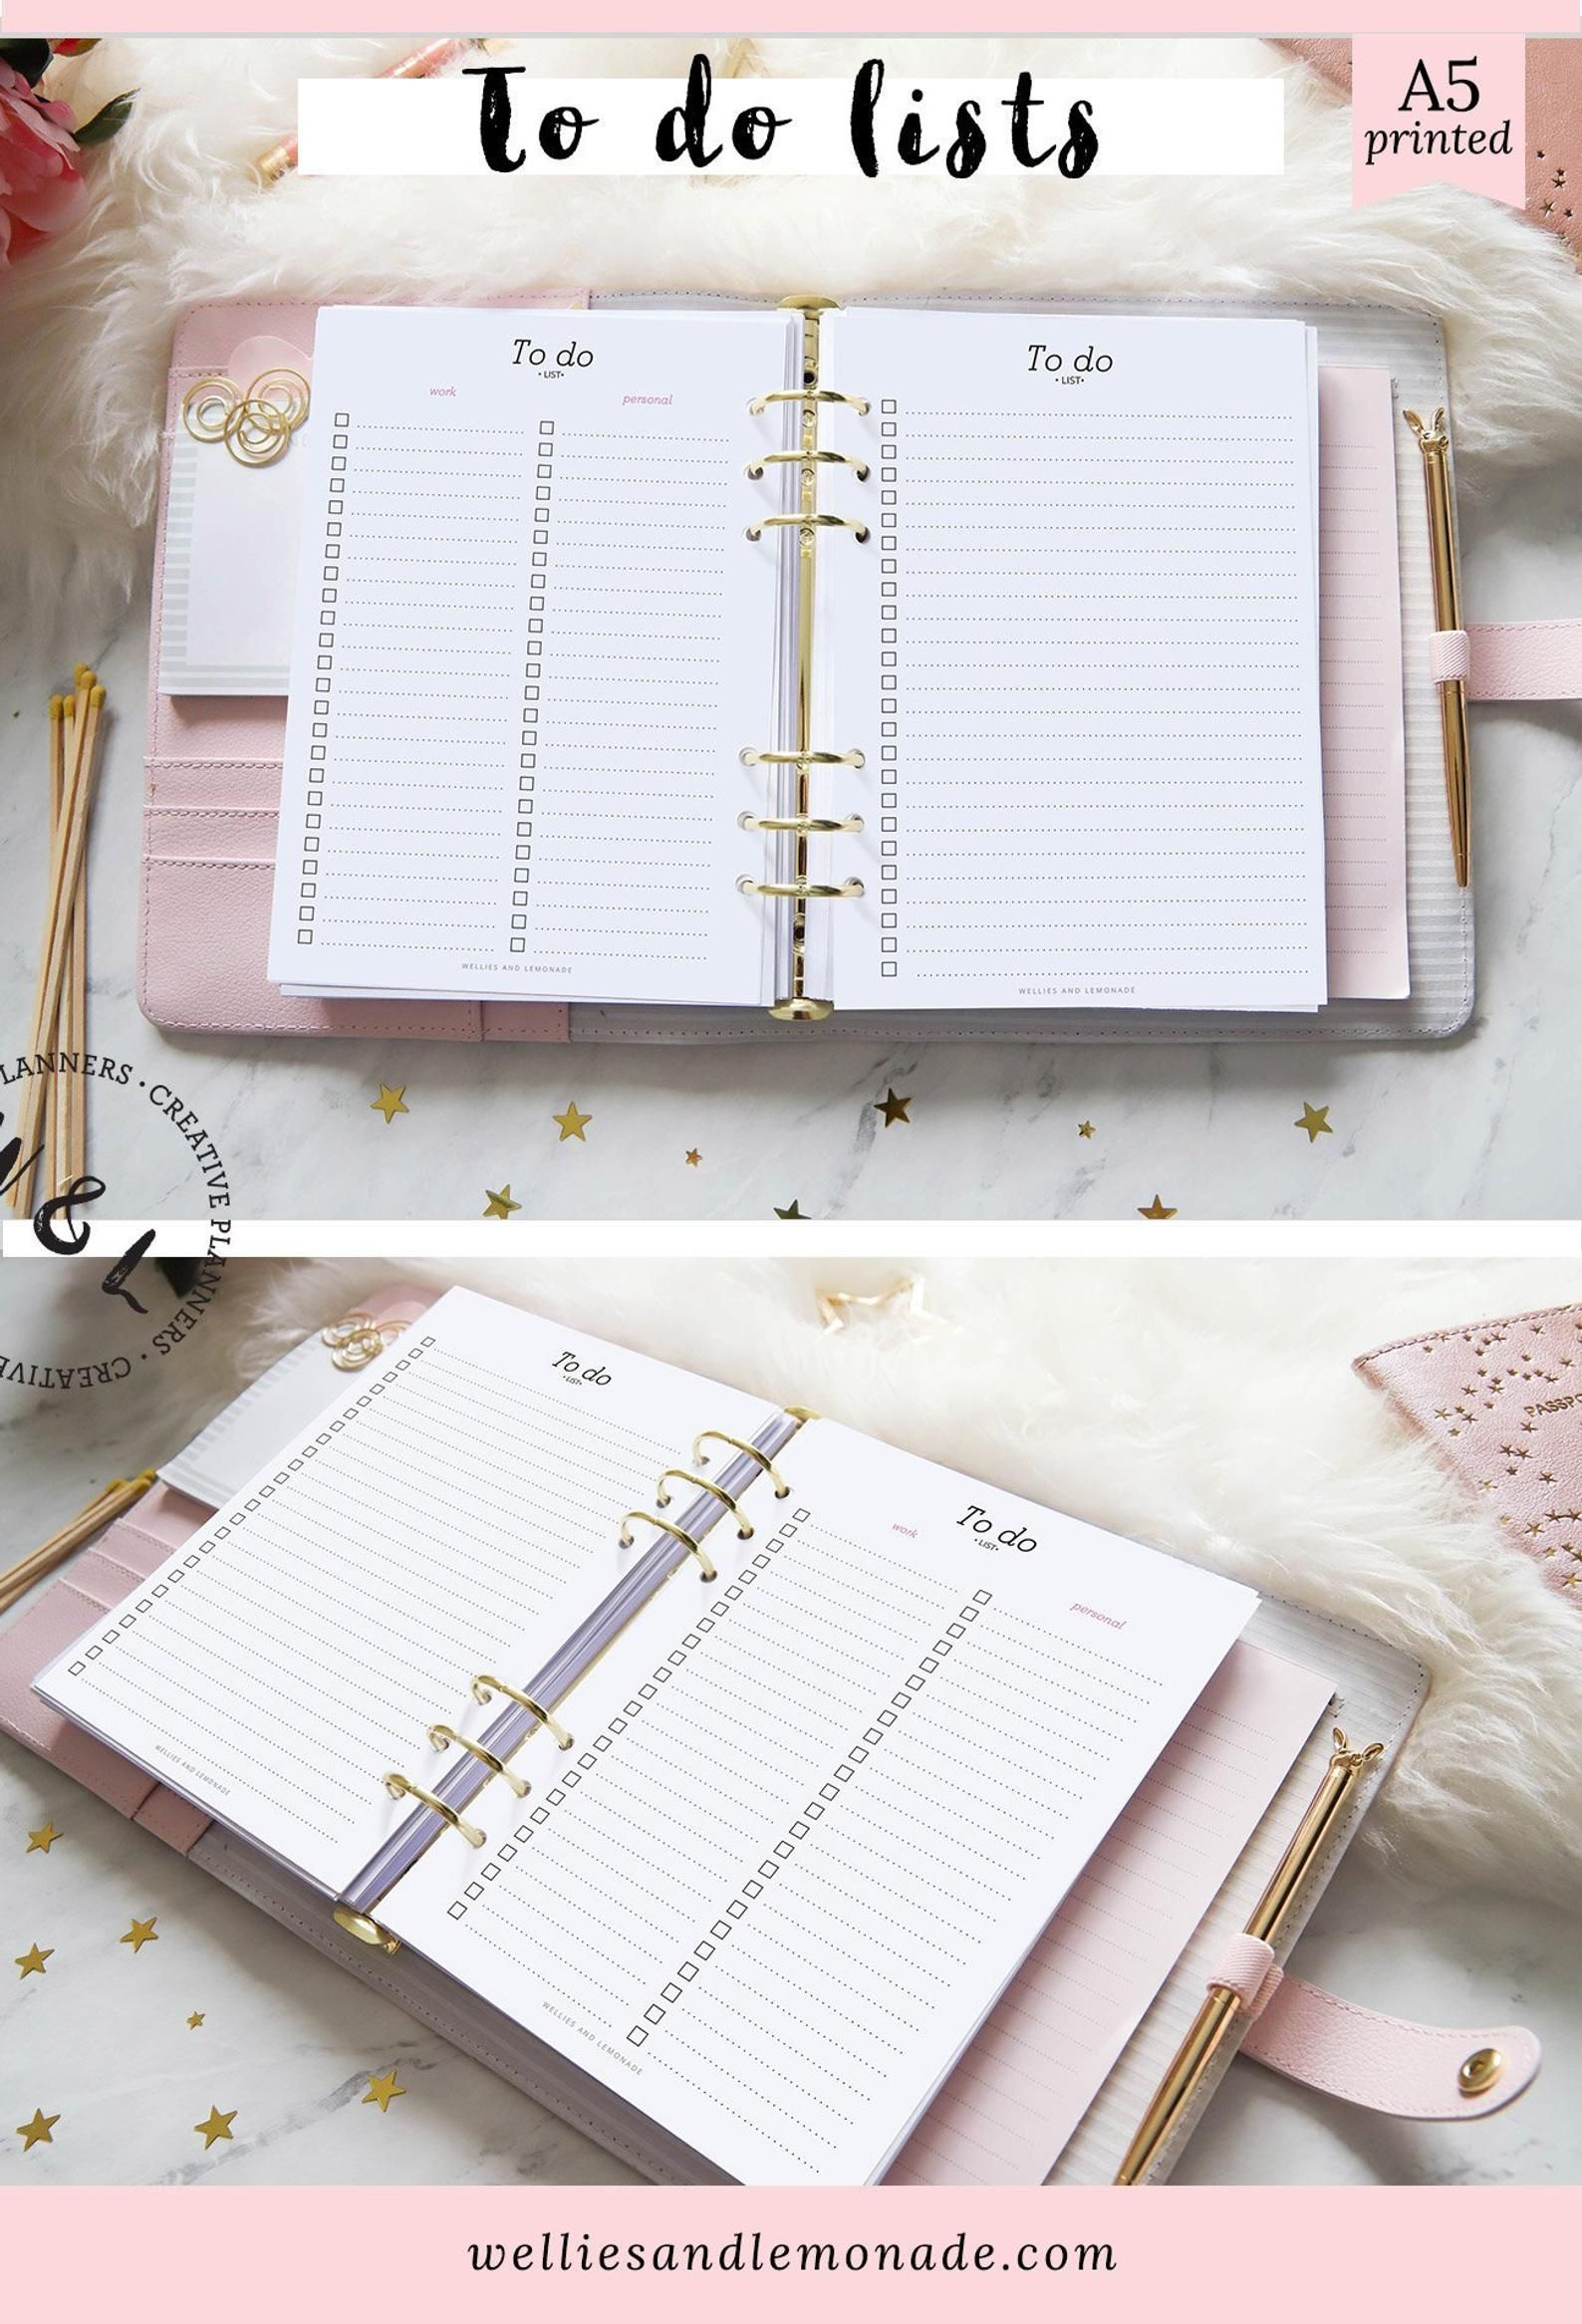 A5 Printed To Do List To Do List Template Daily Planner